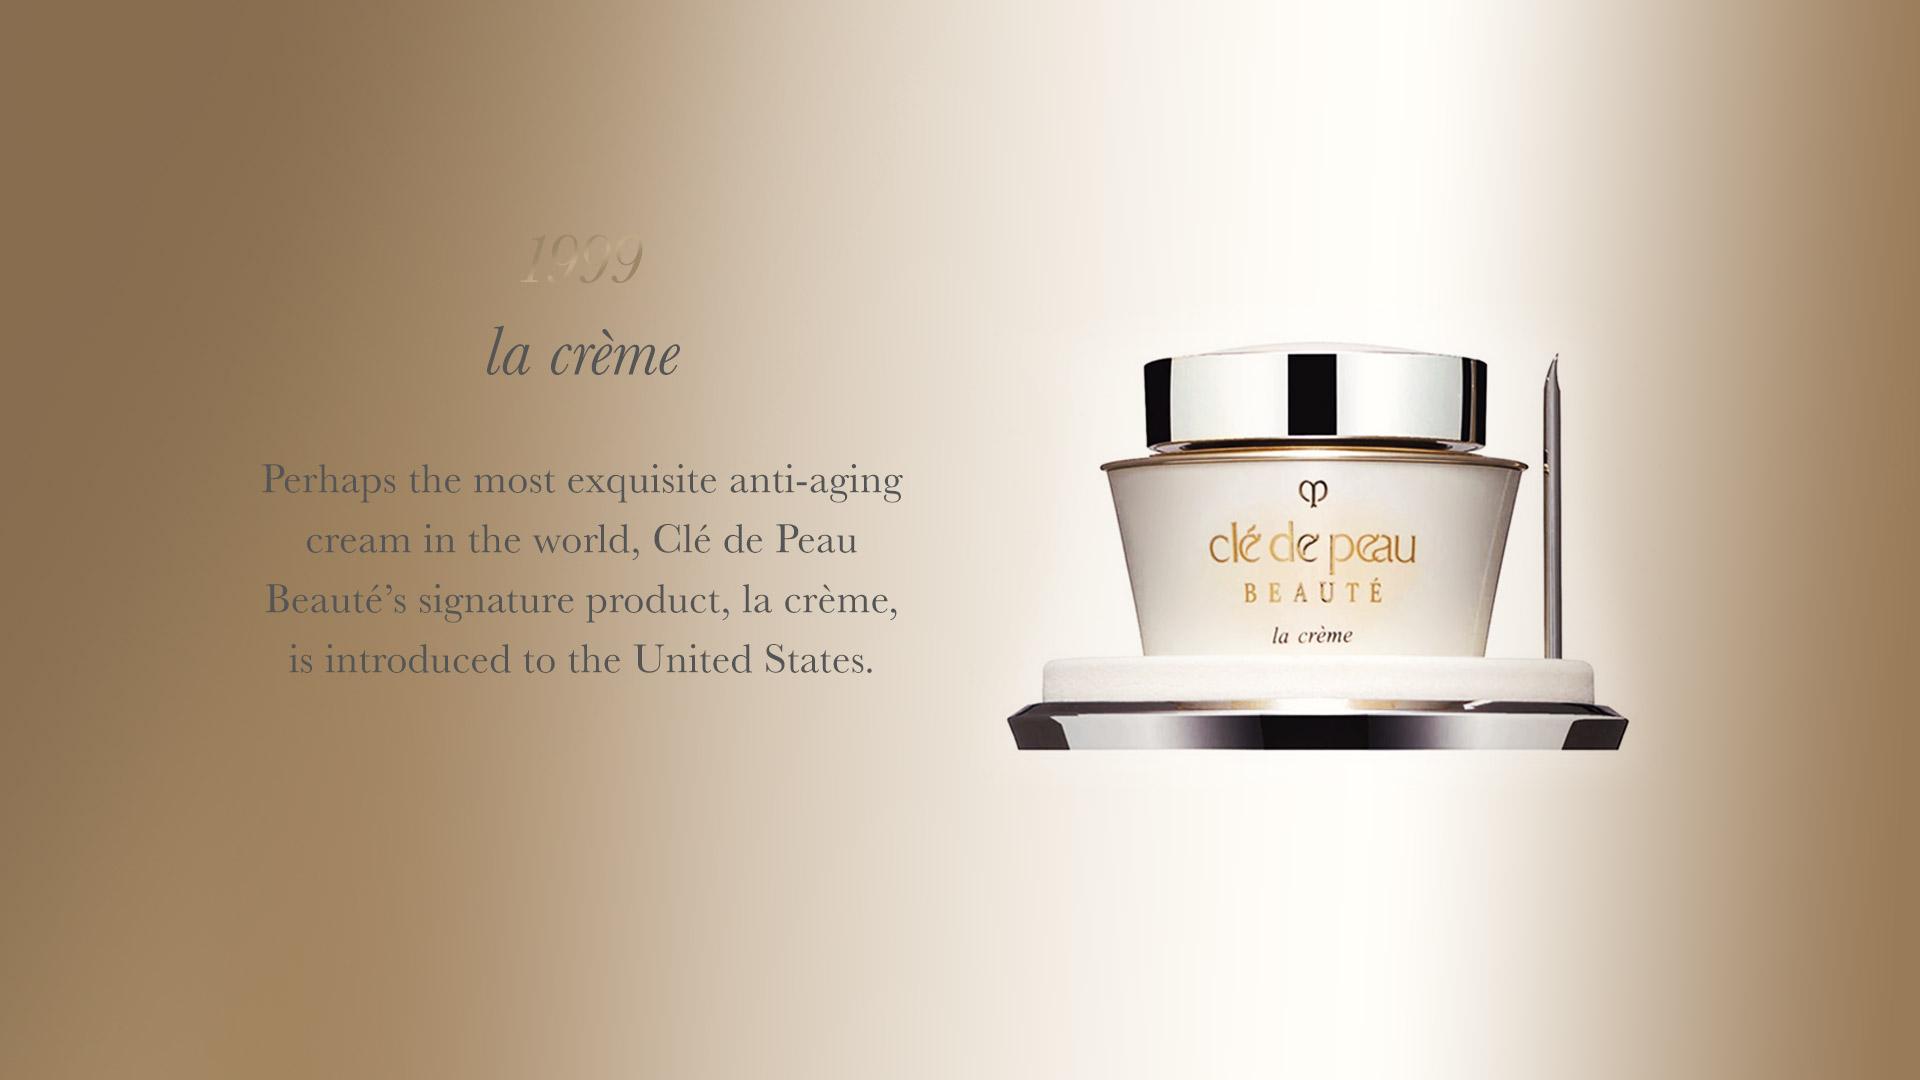 Perhaps the most exquisite anti-aging cream in theworld, Clé de Peau Beauté's signature product, la créme, is introduced to the United States.